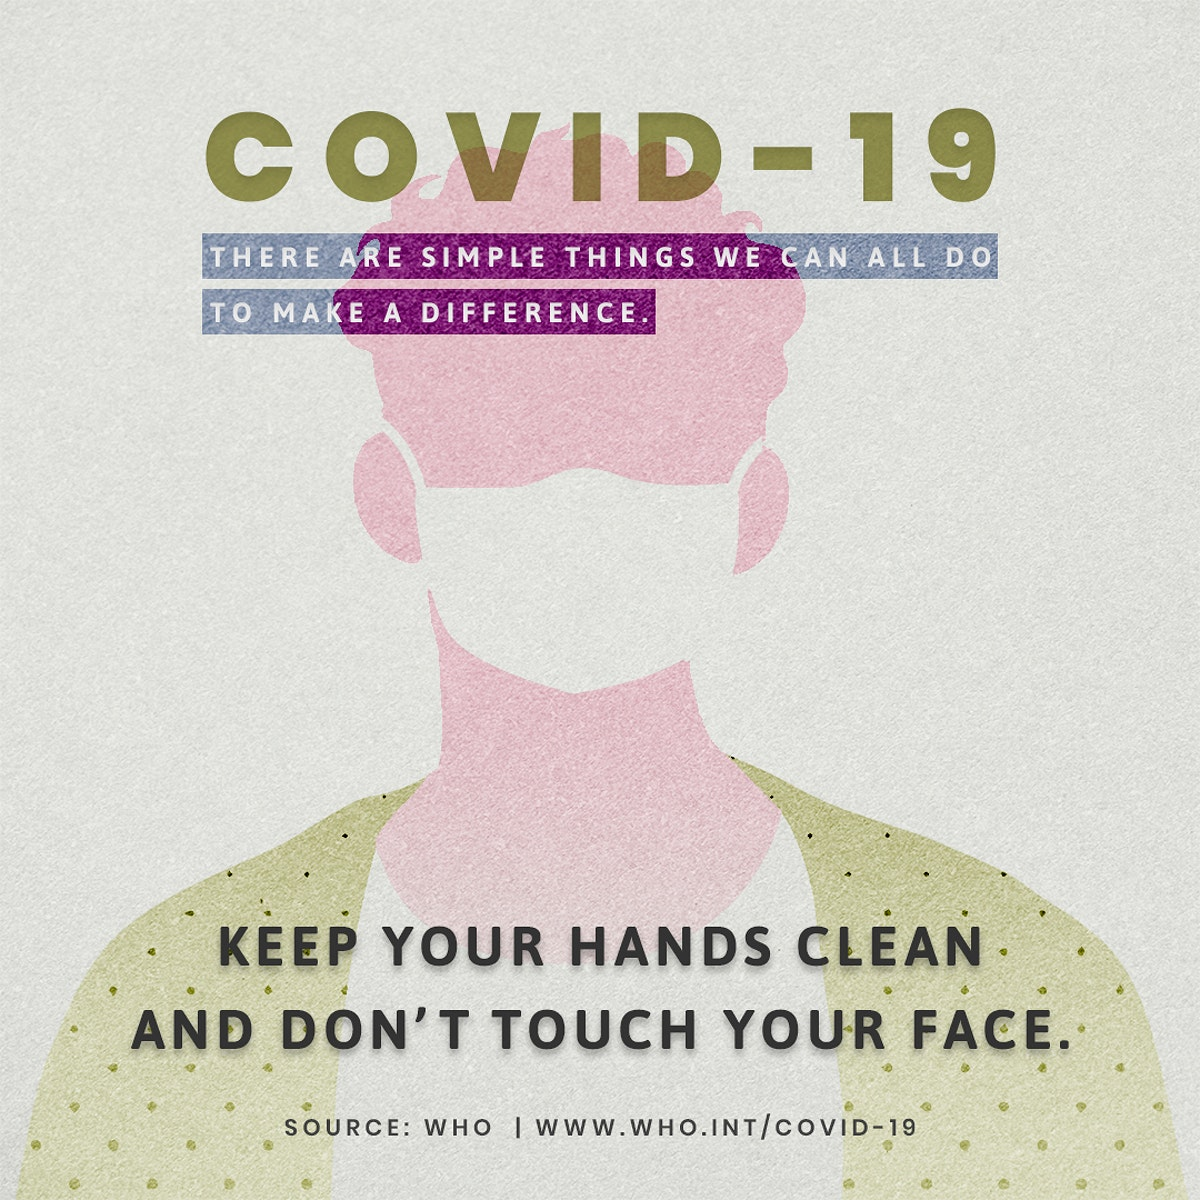 Keep your hands clean and don't touch your face during coronavirus outbreak social template source WHO mockup